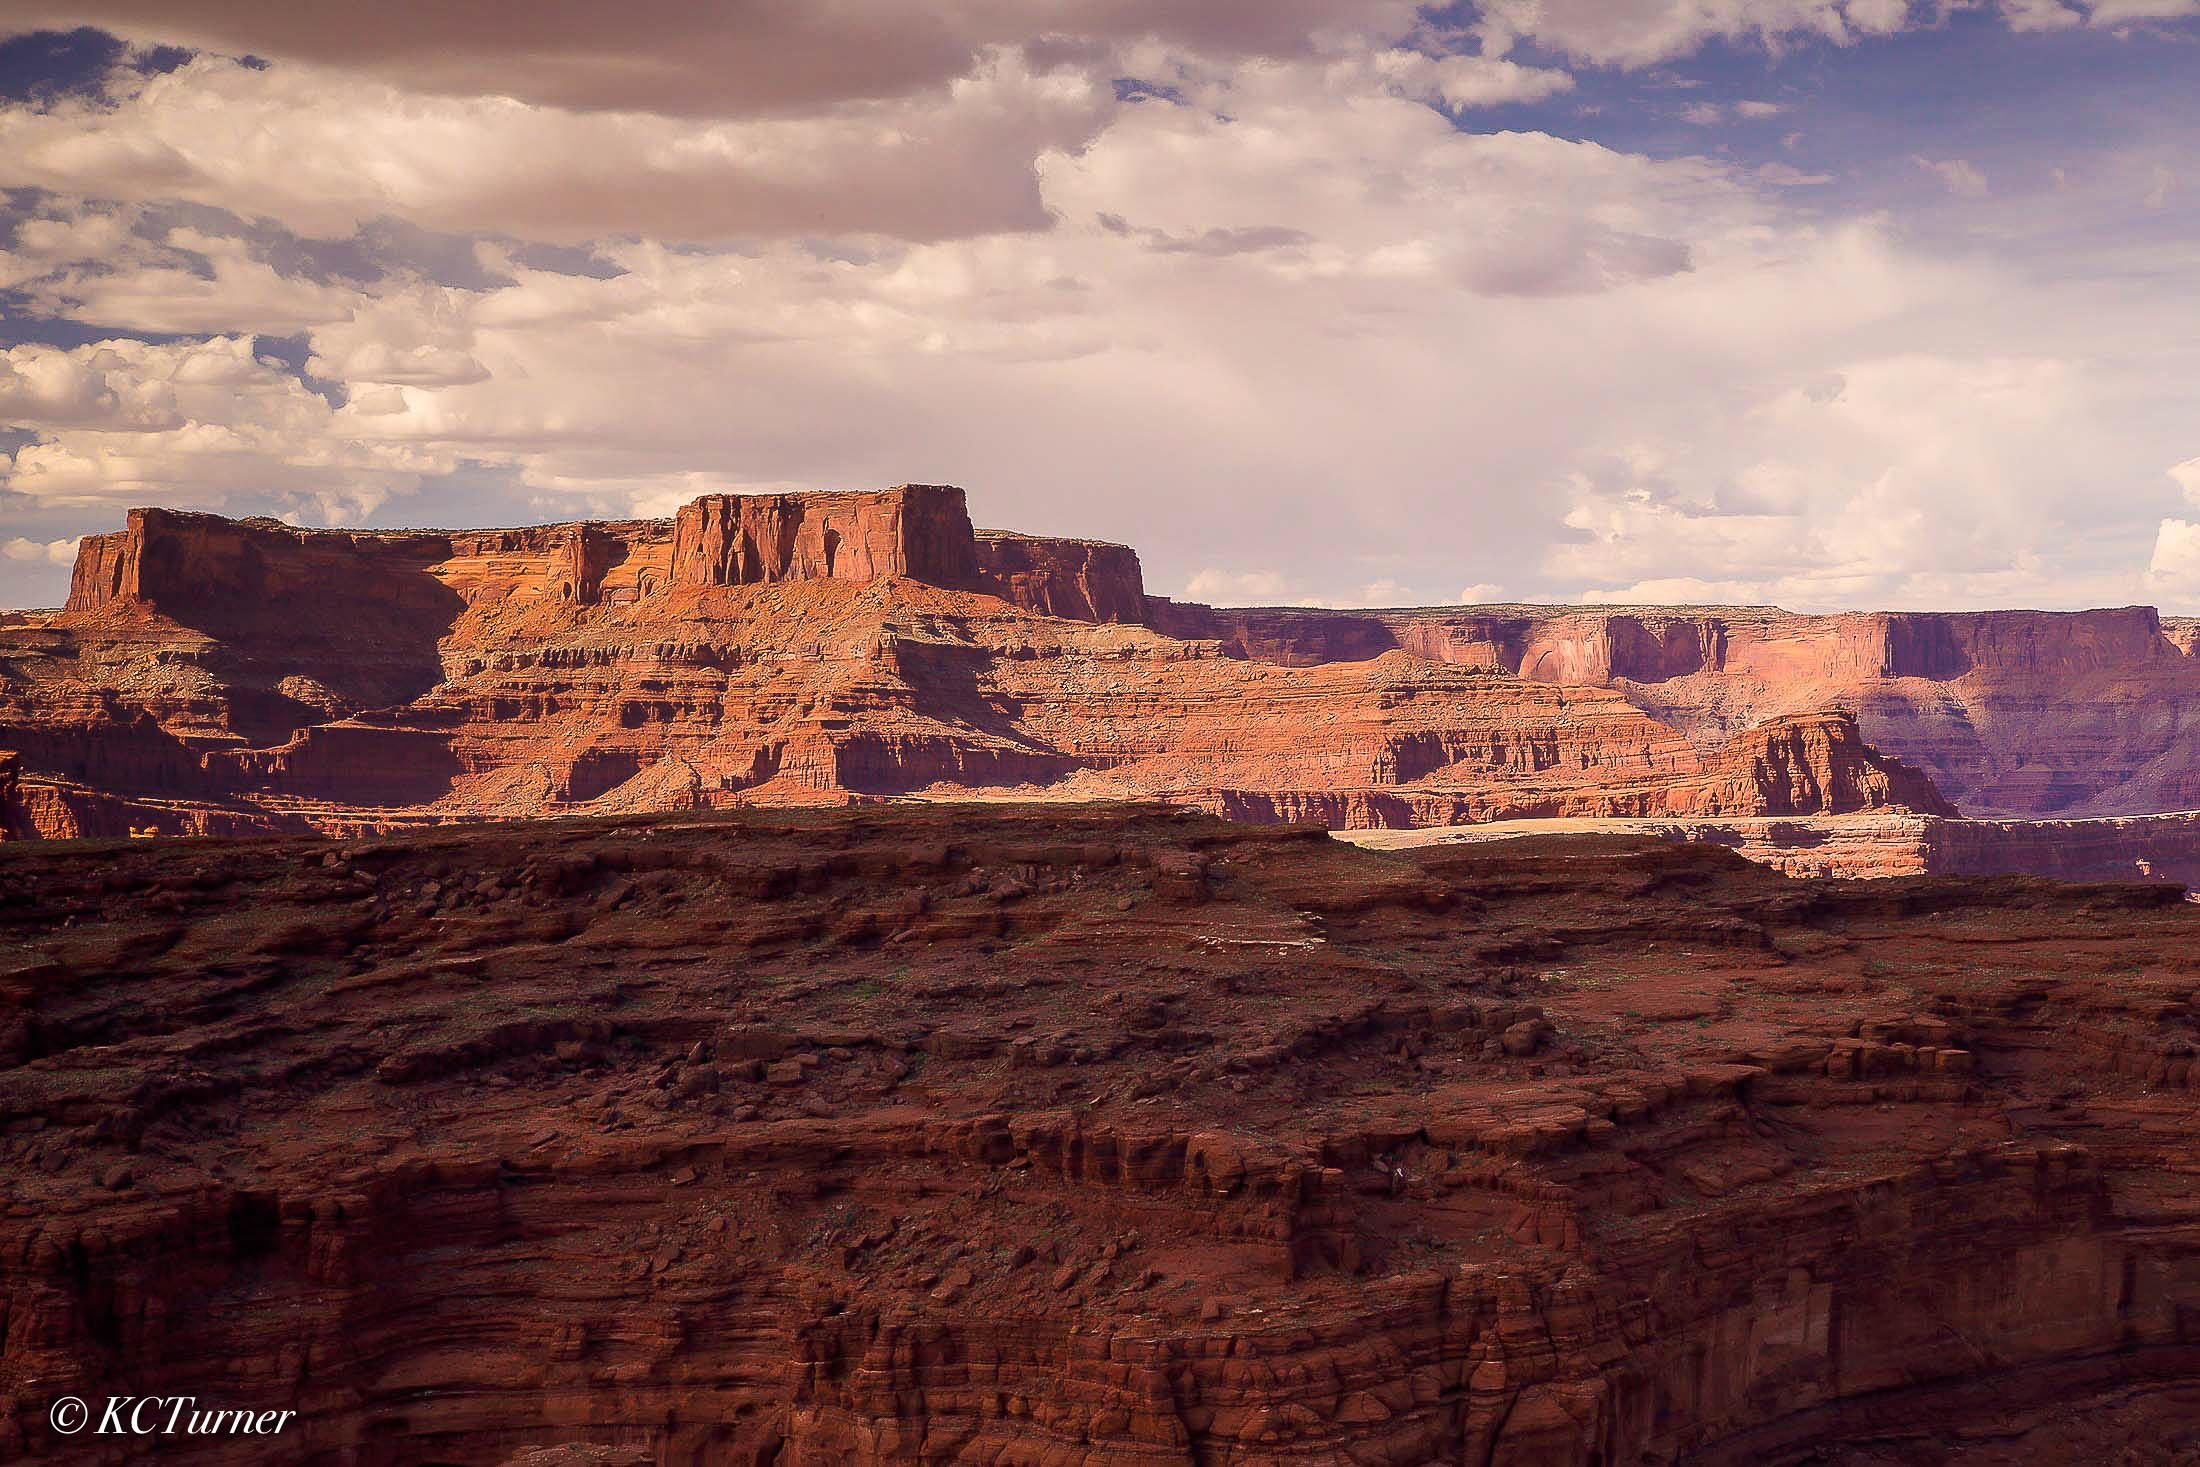 Moab, Utah, canyons, vistas, rock formations, photo opportunities, panorama, photo